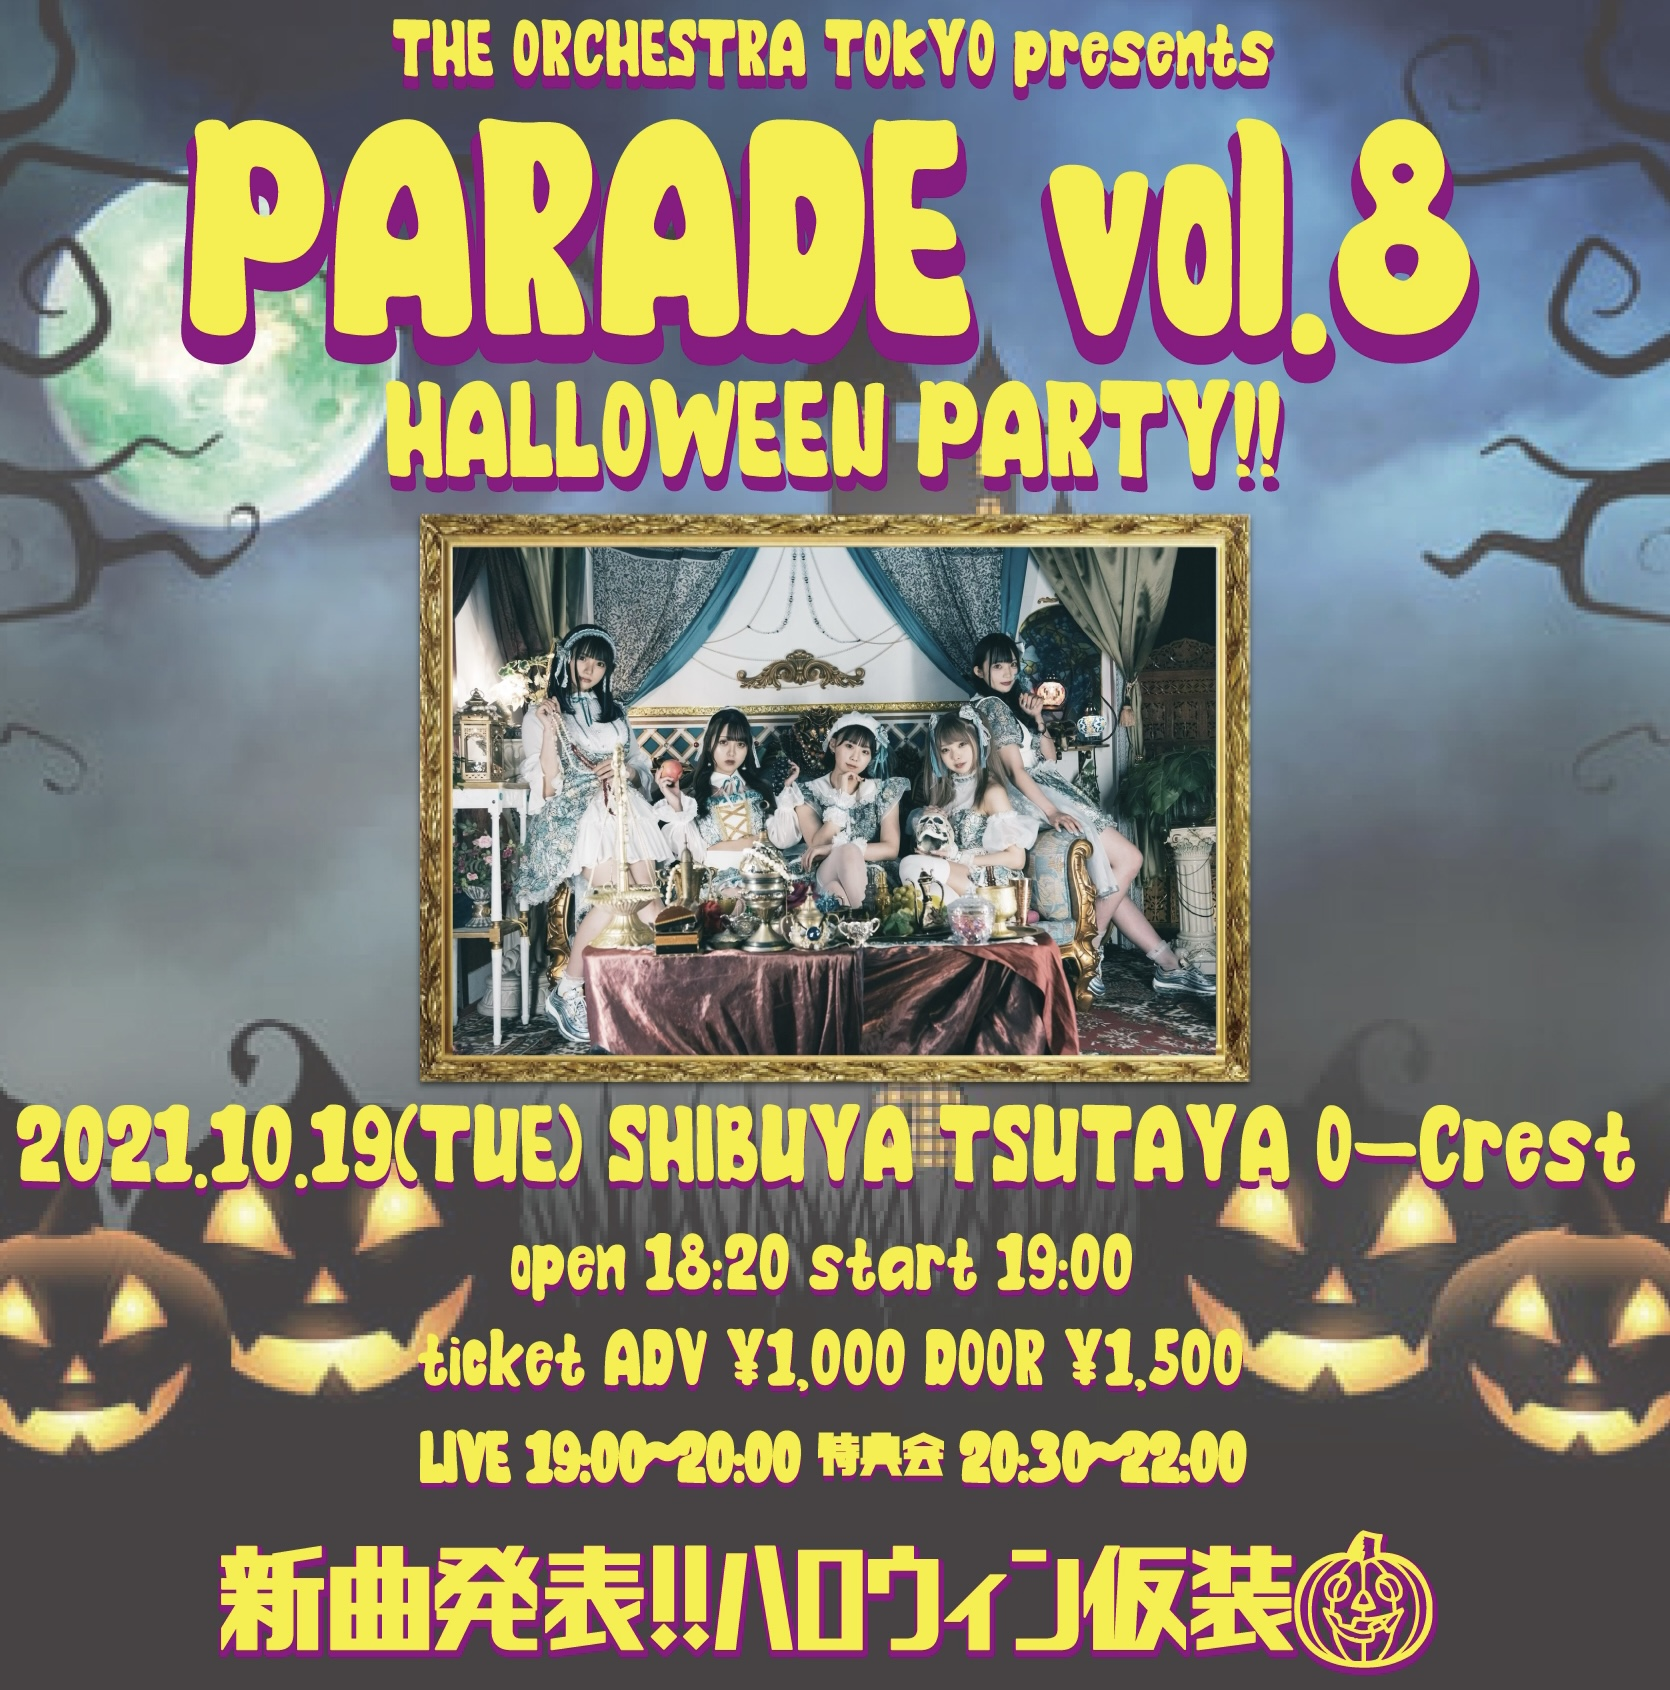 THE ORCHESTRA TOKYO定期公演『PARADE vol.8  HALLOWEEN PARTY!!』